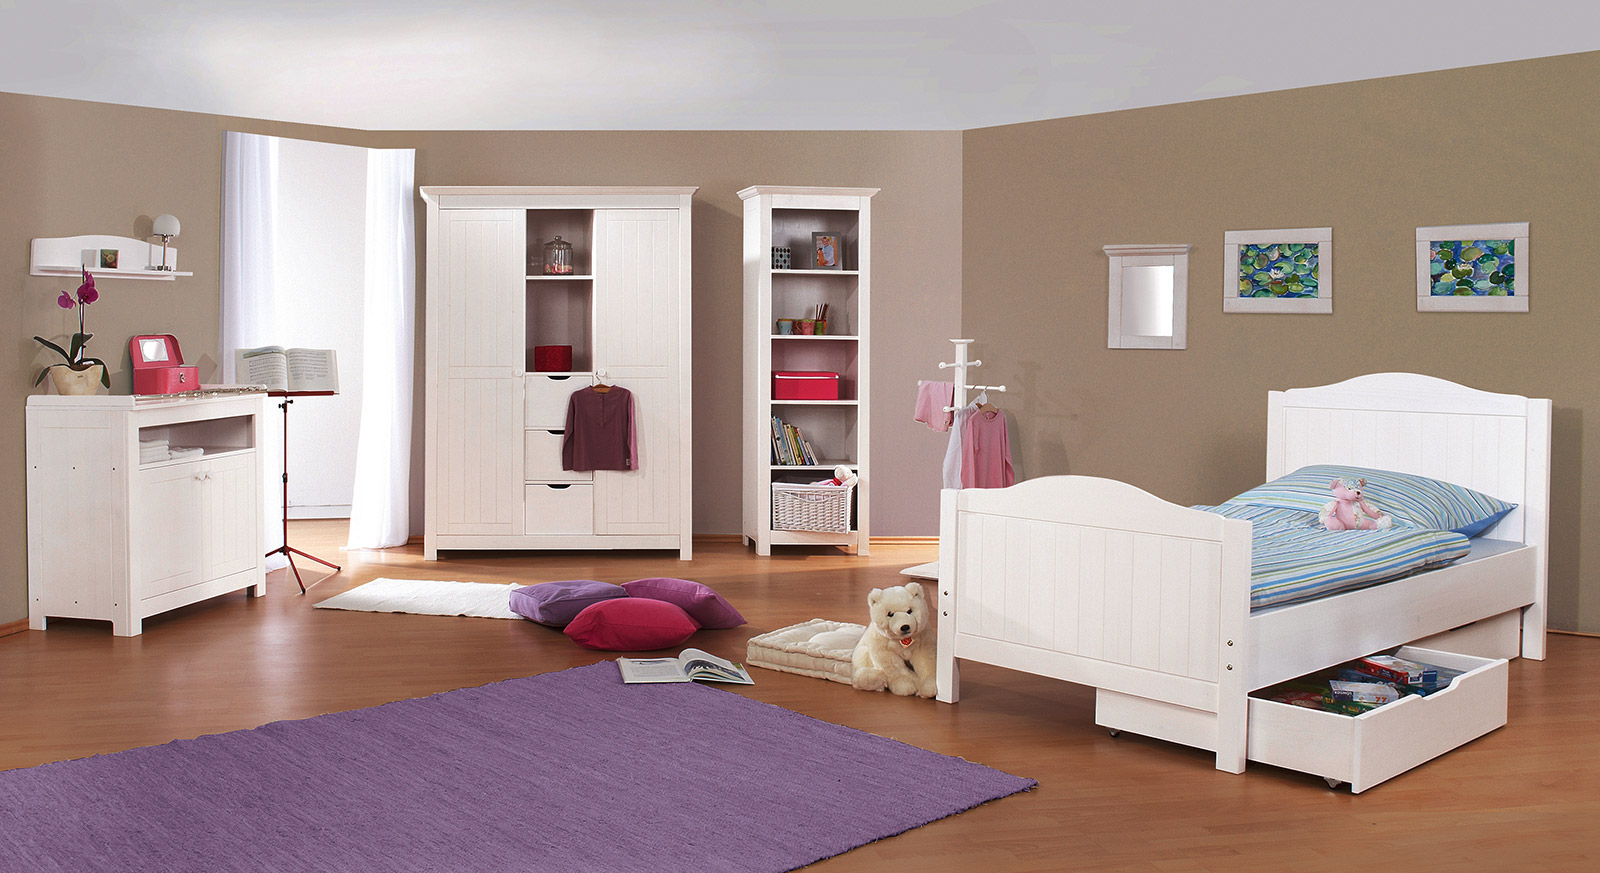 regal kinderzimmer mit weidenkorb g nstig nina. Black Bedroom Furniture Sets. Home Design Ideas